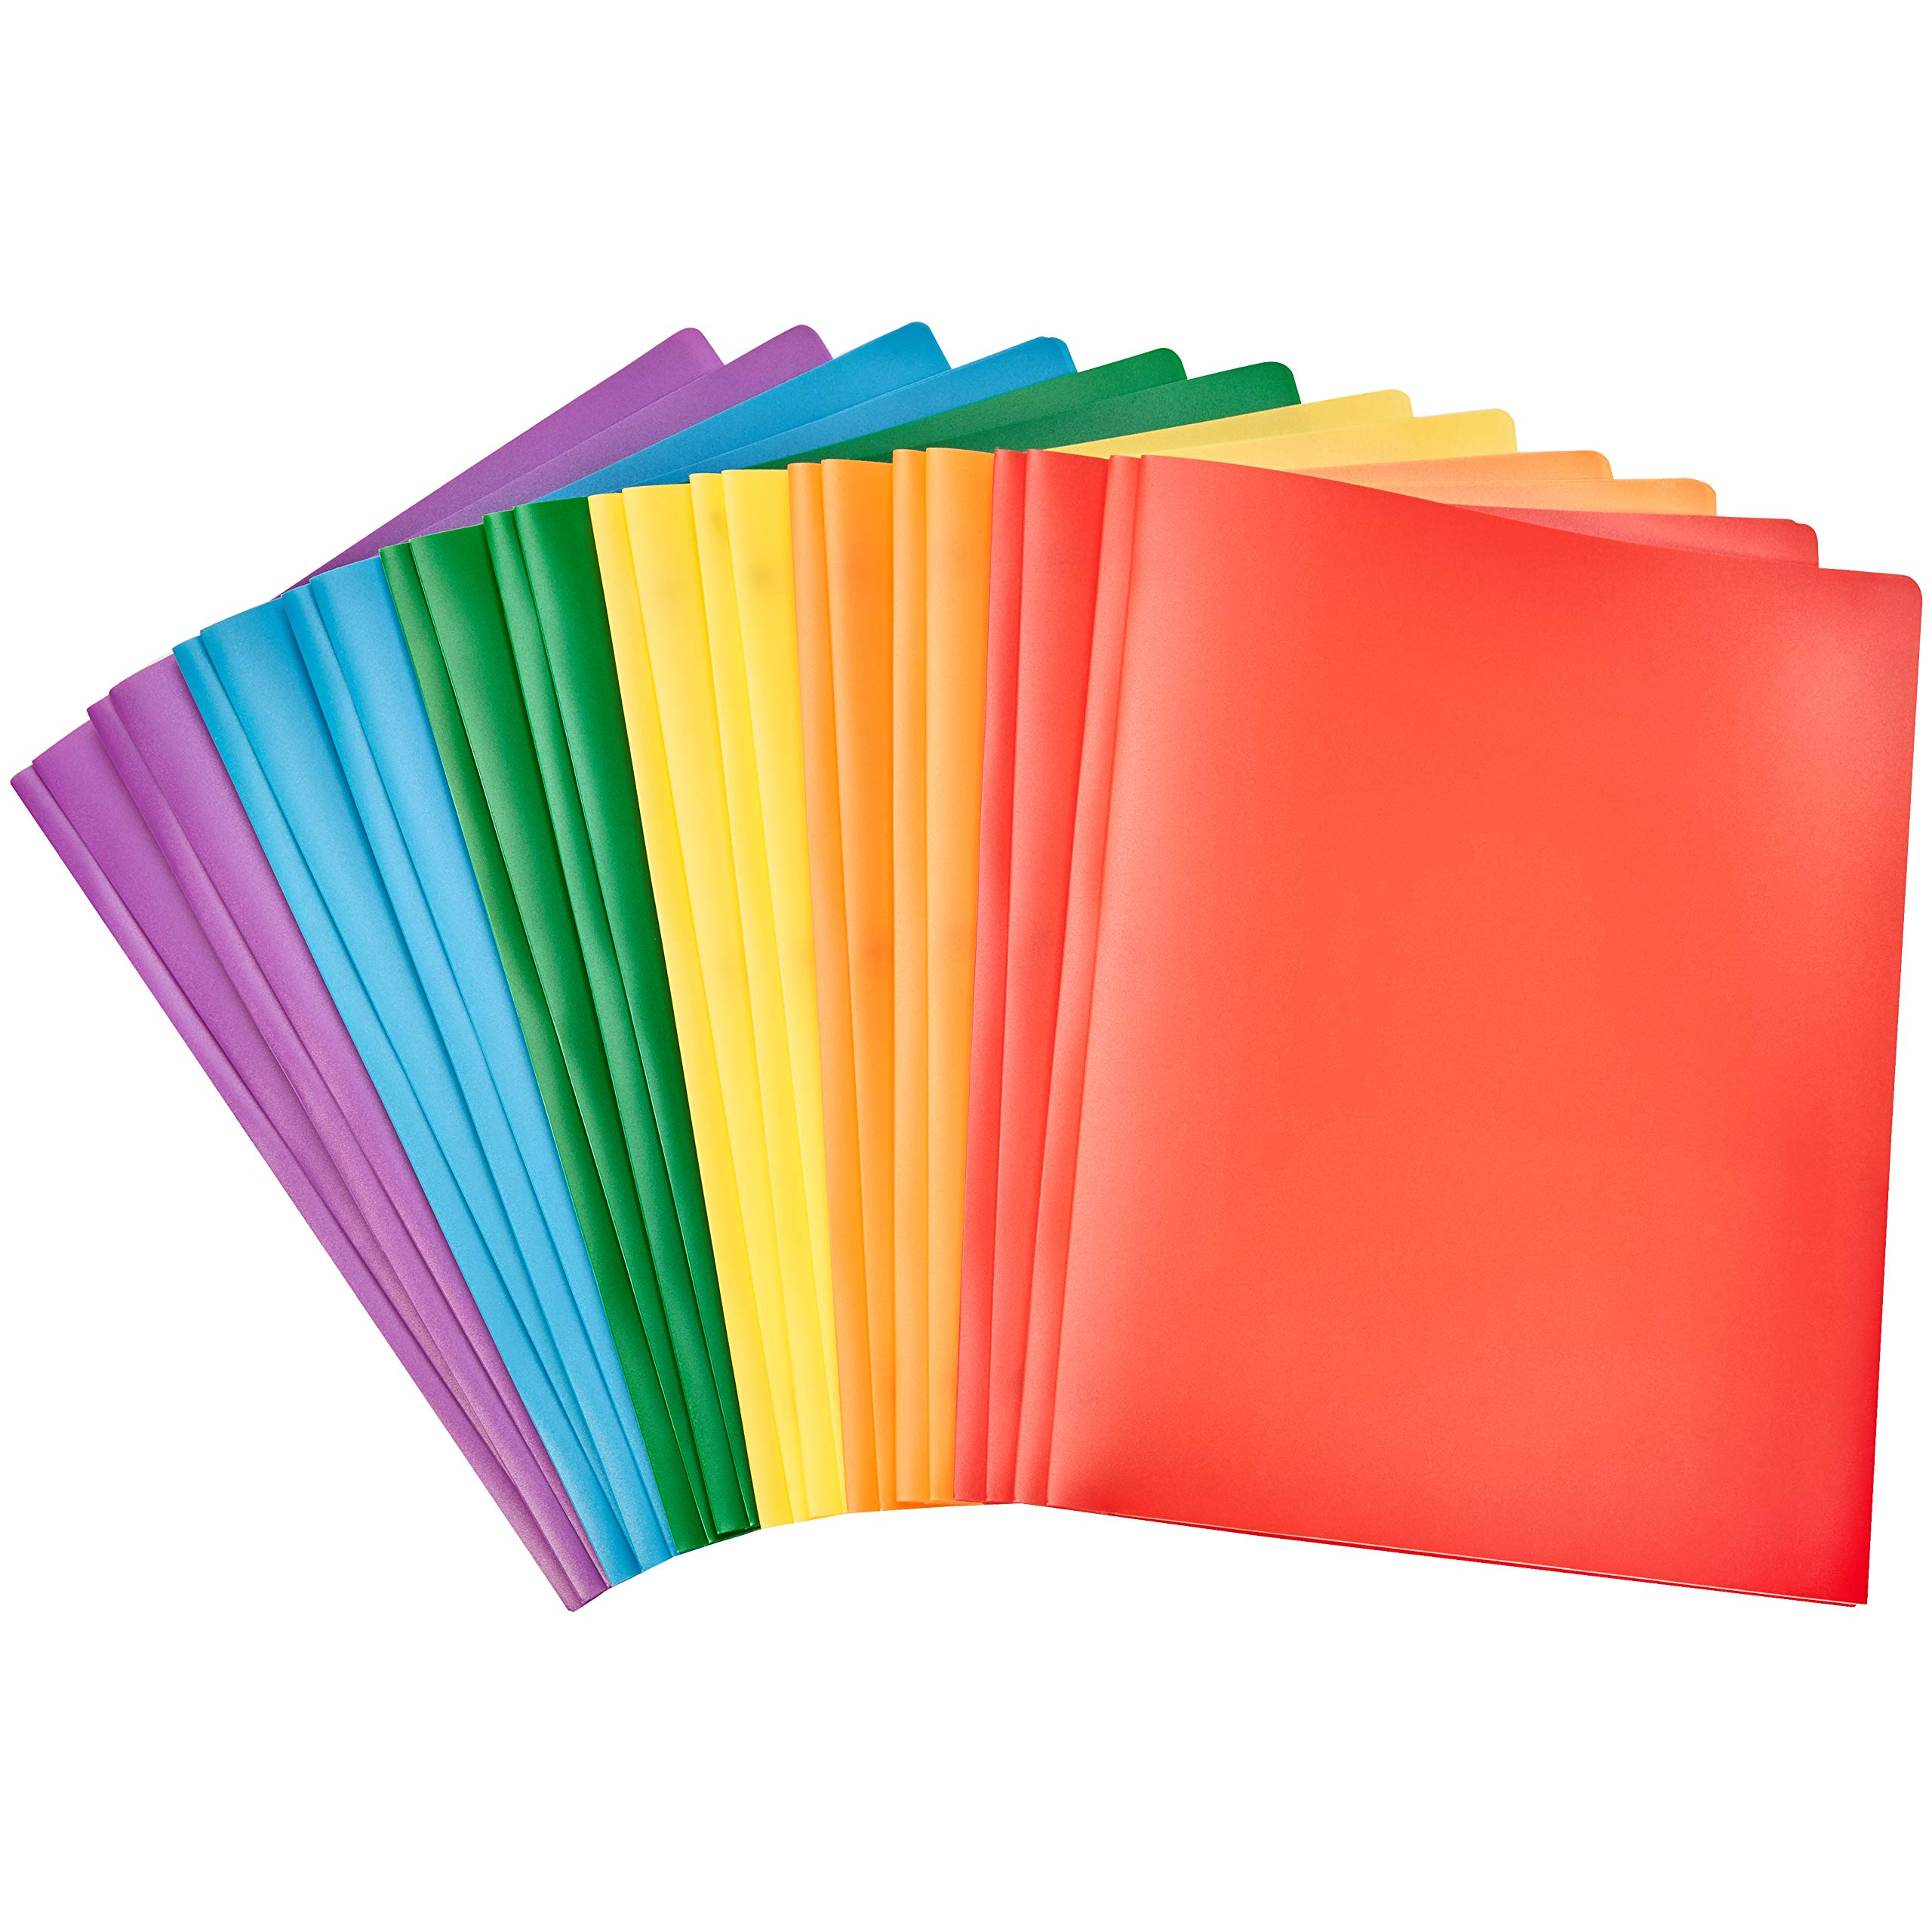 AmazonBasics Heavy Duty Plastic Folders with 2 Pockets for Letter Size Paper, Pack of 12 by AmazonBasics